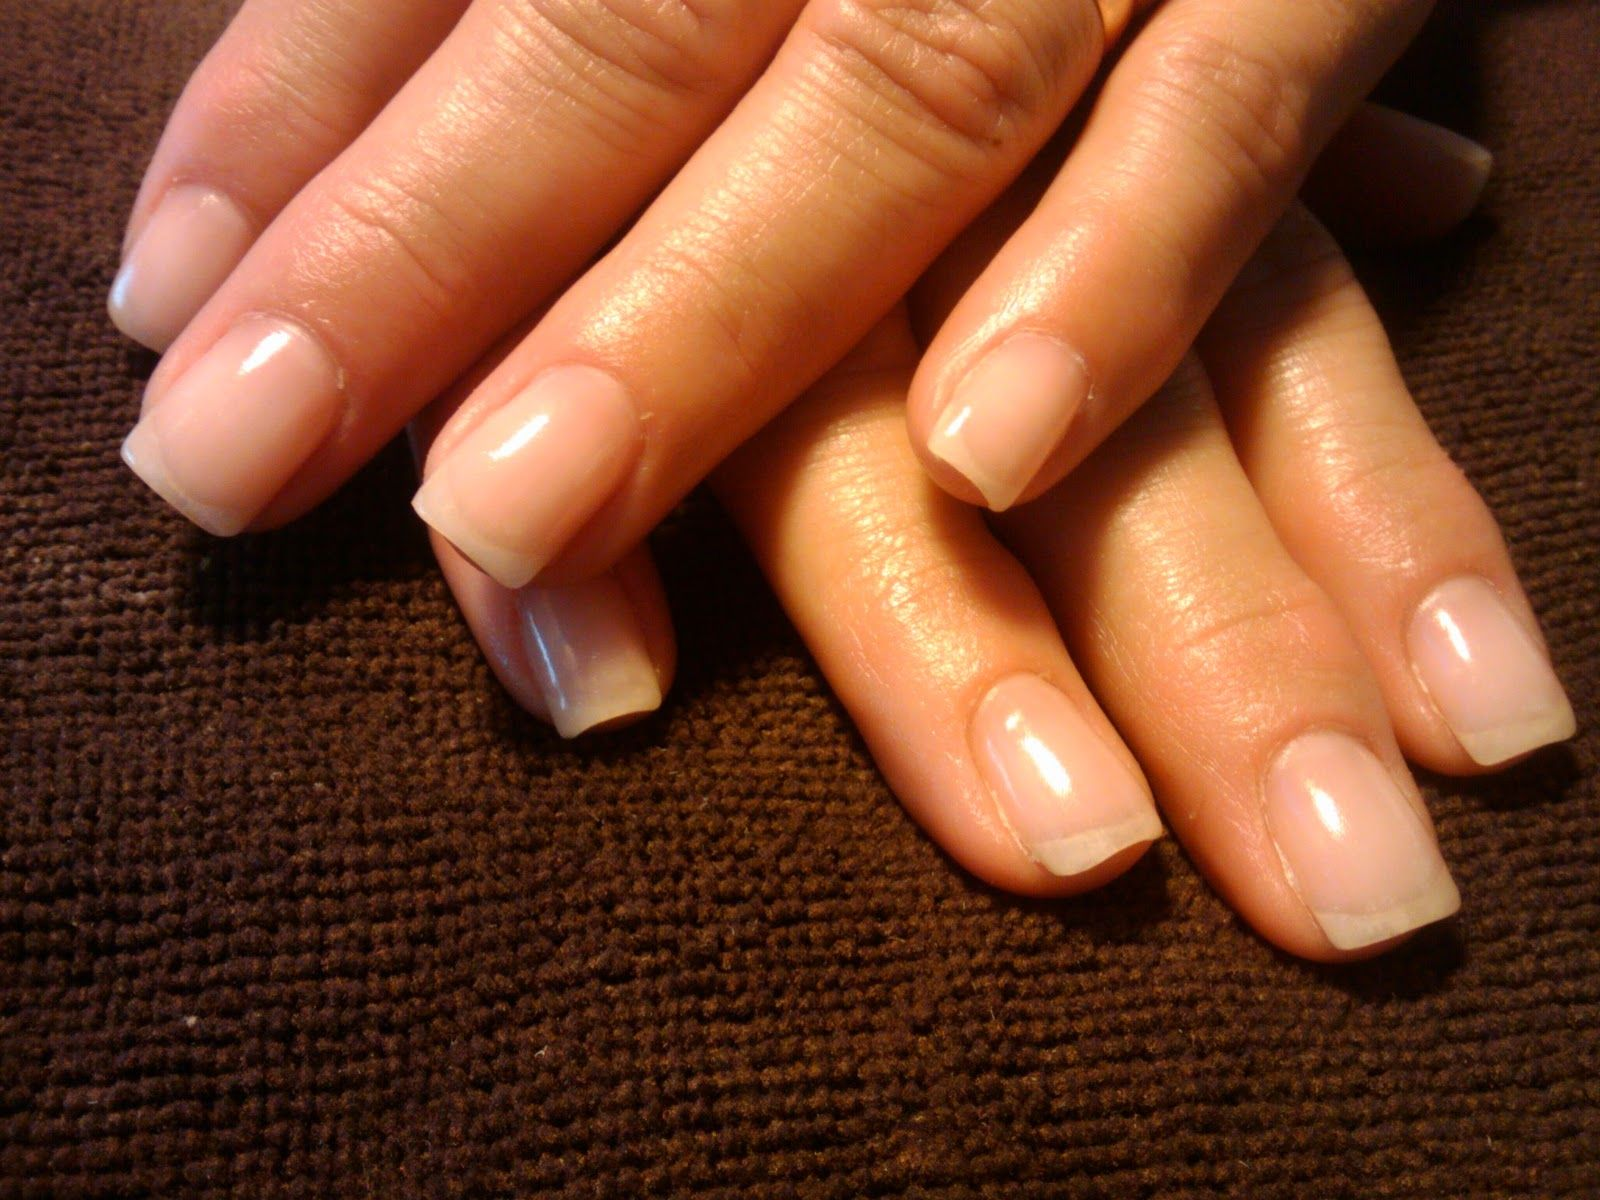 Let's make your nails pretty: Let's give those natural